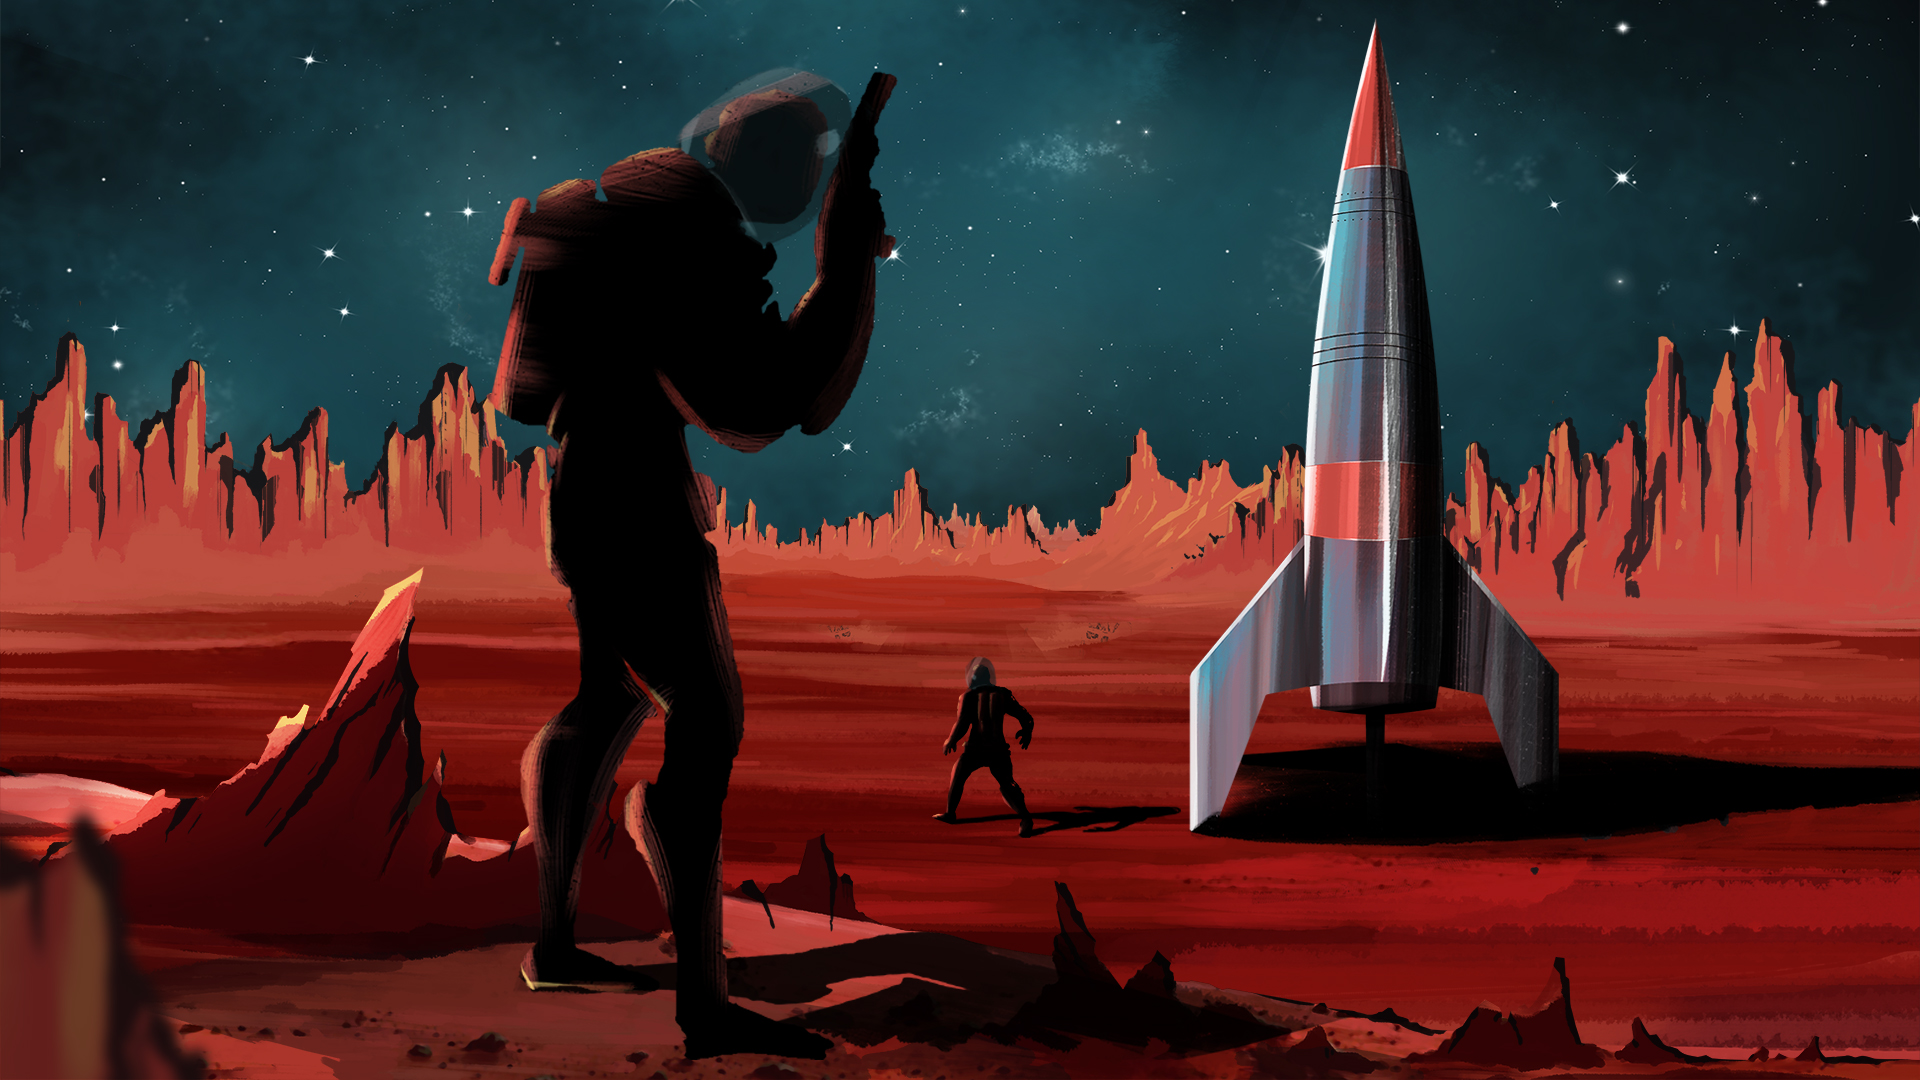 BBC iPlayer - Hunting the Martians